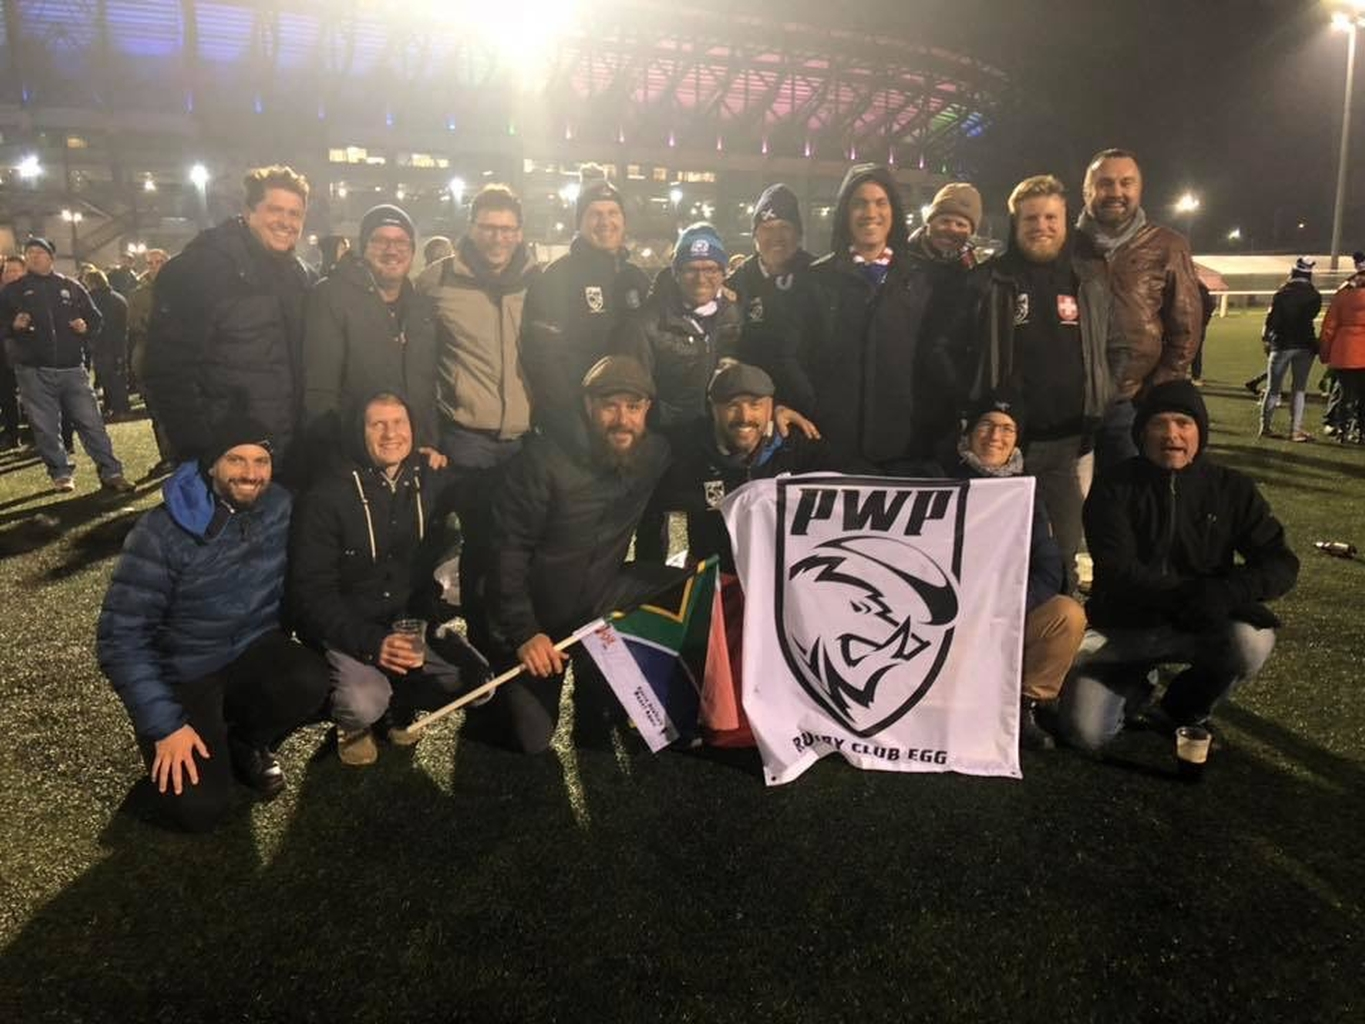 2018/11 Autumn Internationals Edinburgh